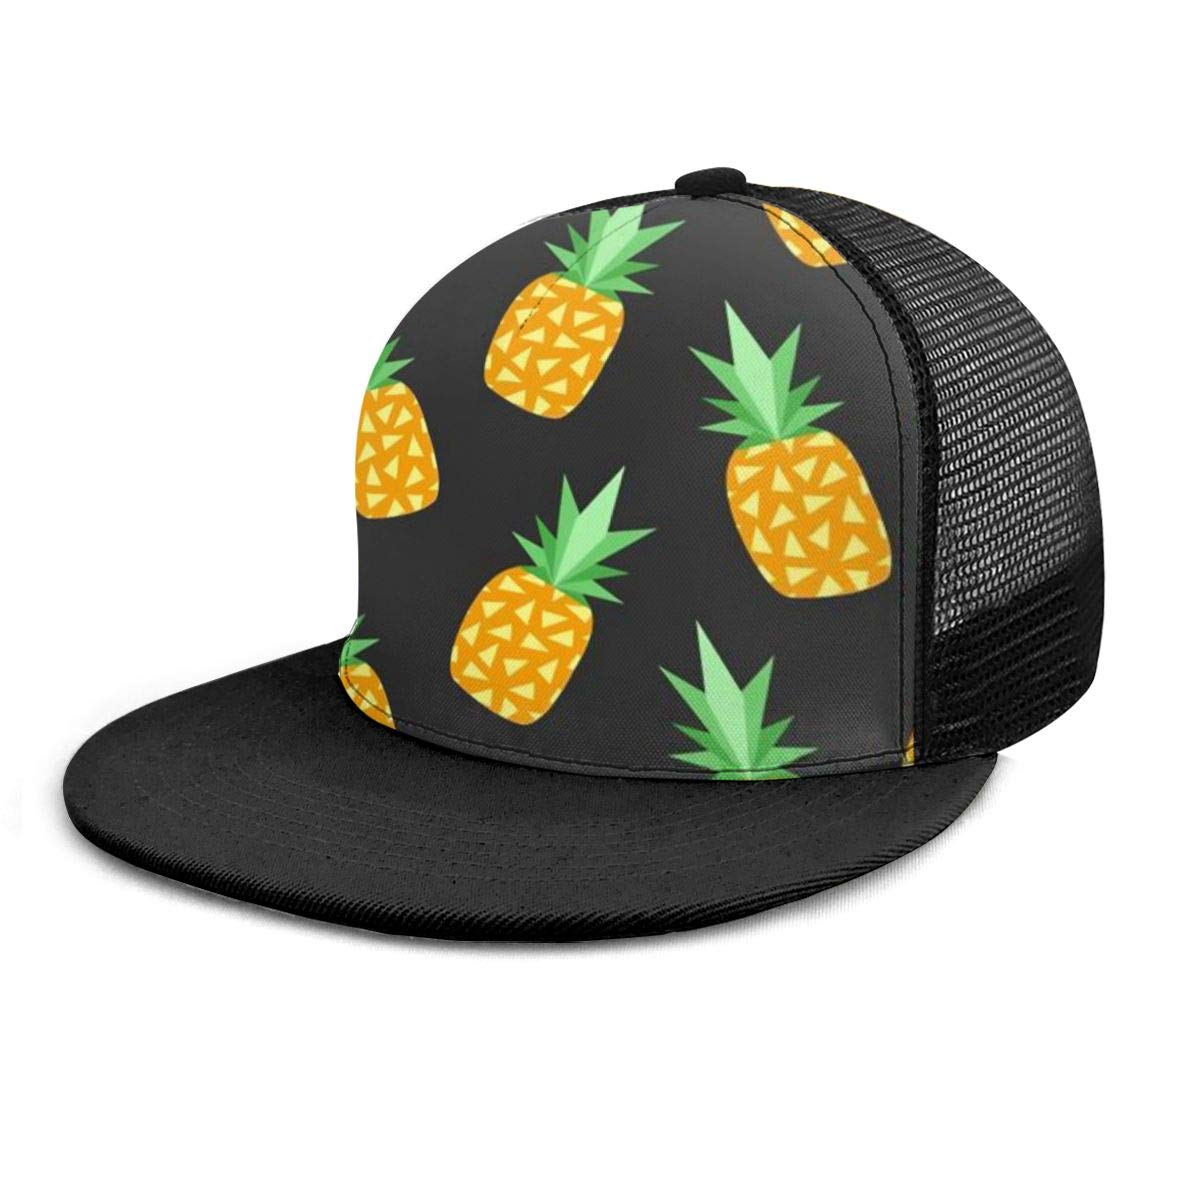 Ry71@Cap Boys and Girls 100/% Polyester Pineapples Mesh Hat Cool Mesh Back Trucker Hat for Unisex